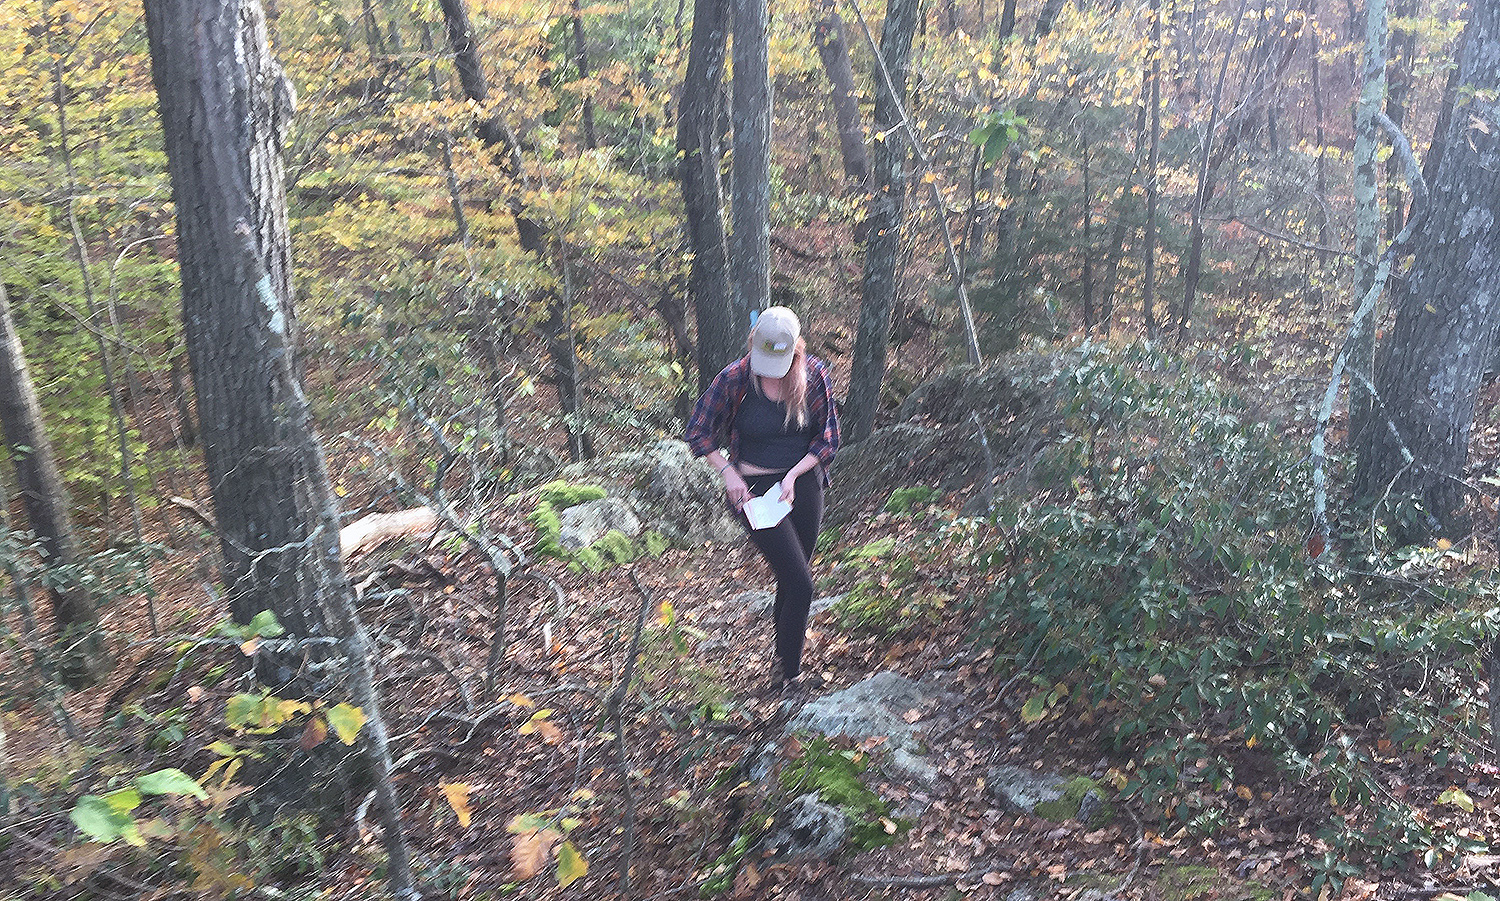 Earth and environmental sciences major Jackie Buskop '19 collects field data along a hiking trail in Connecticut. (Photo by Melissa Luna)